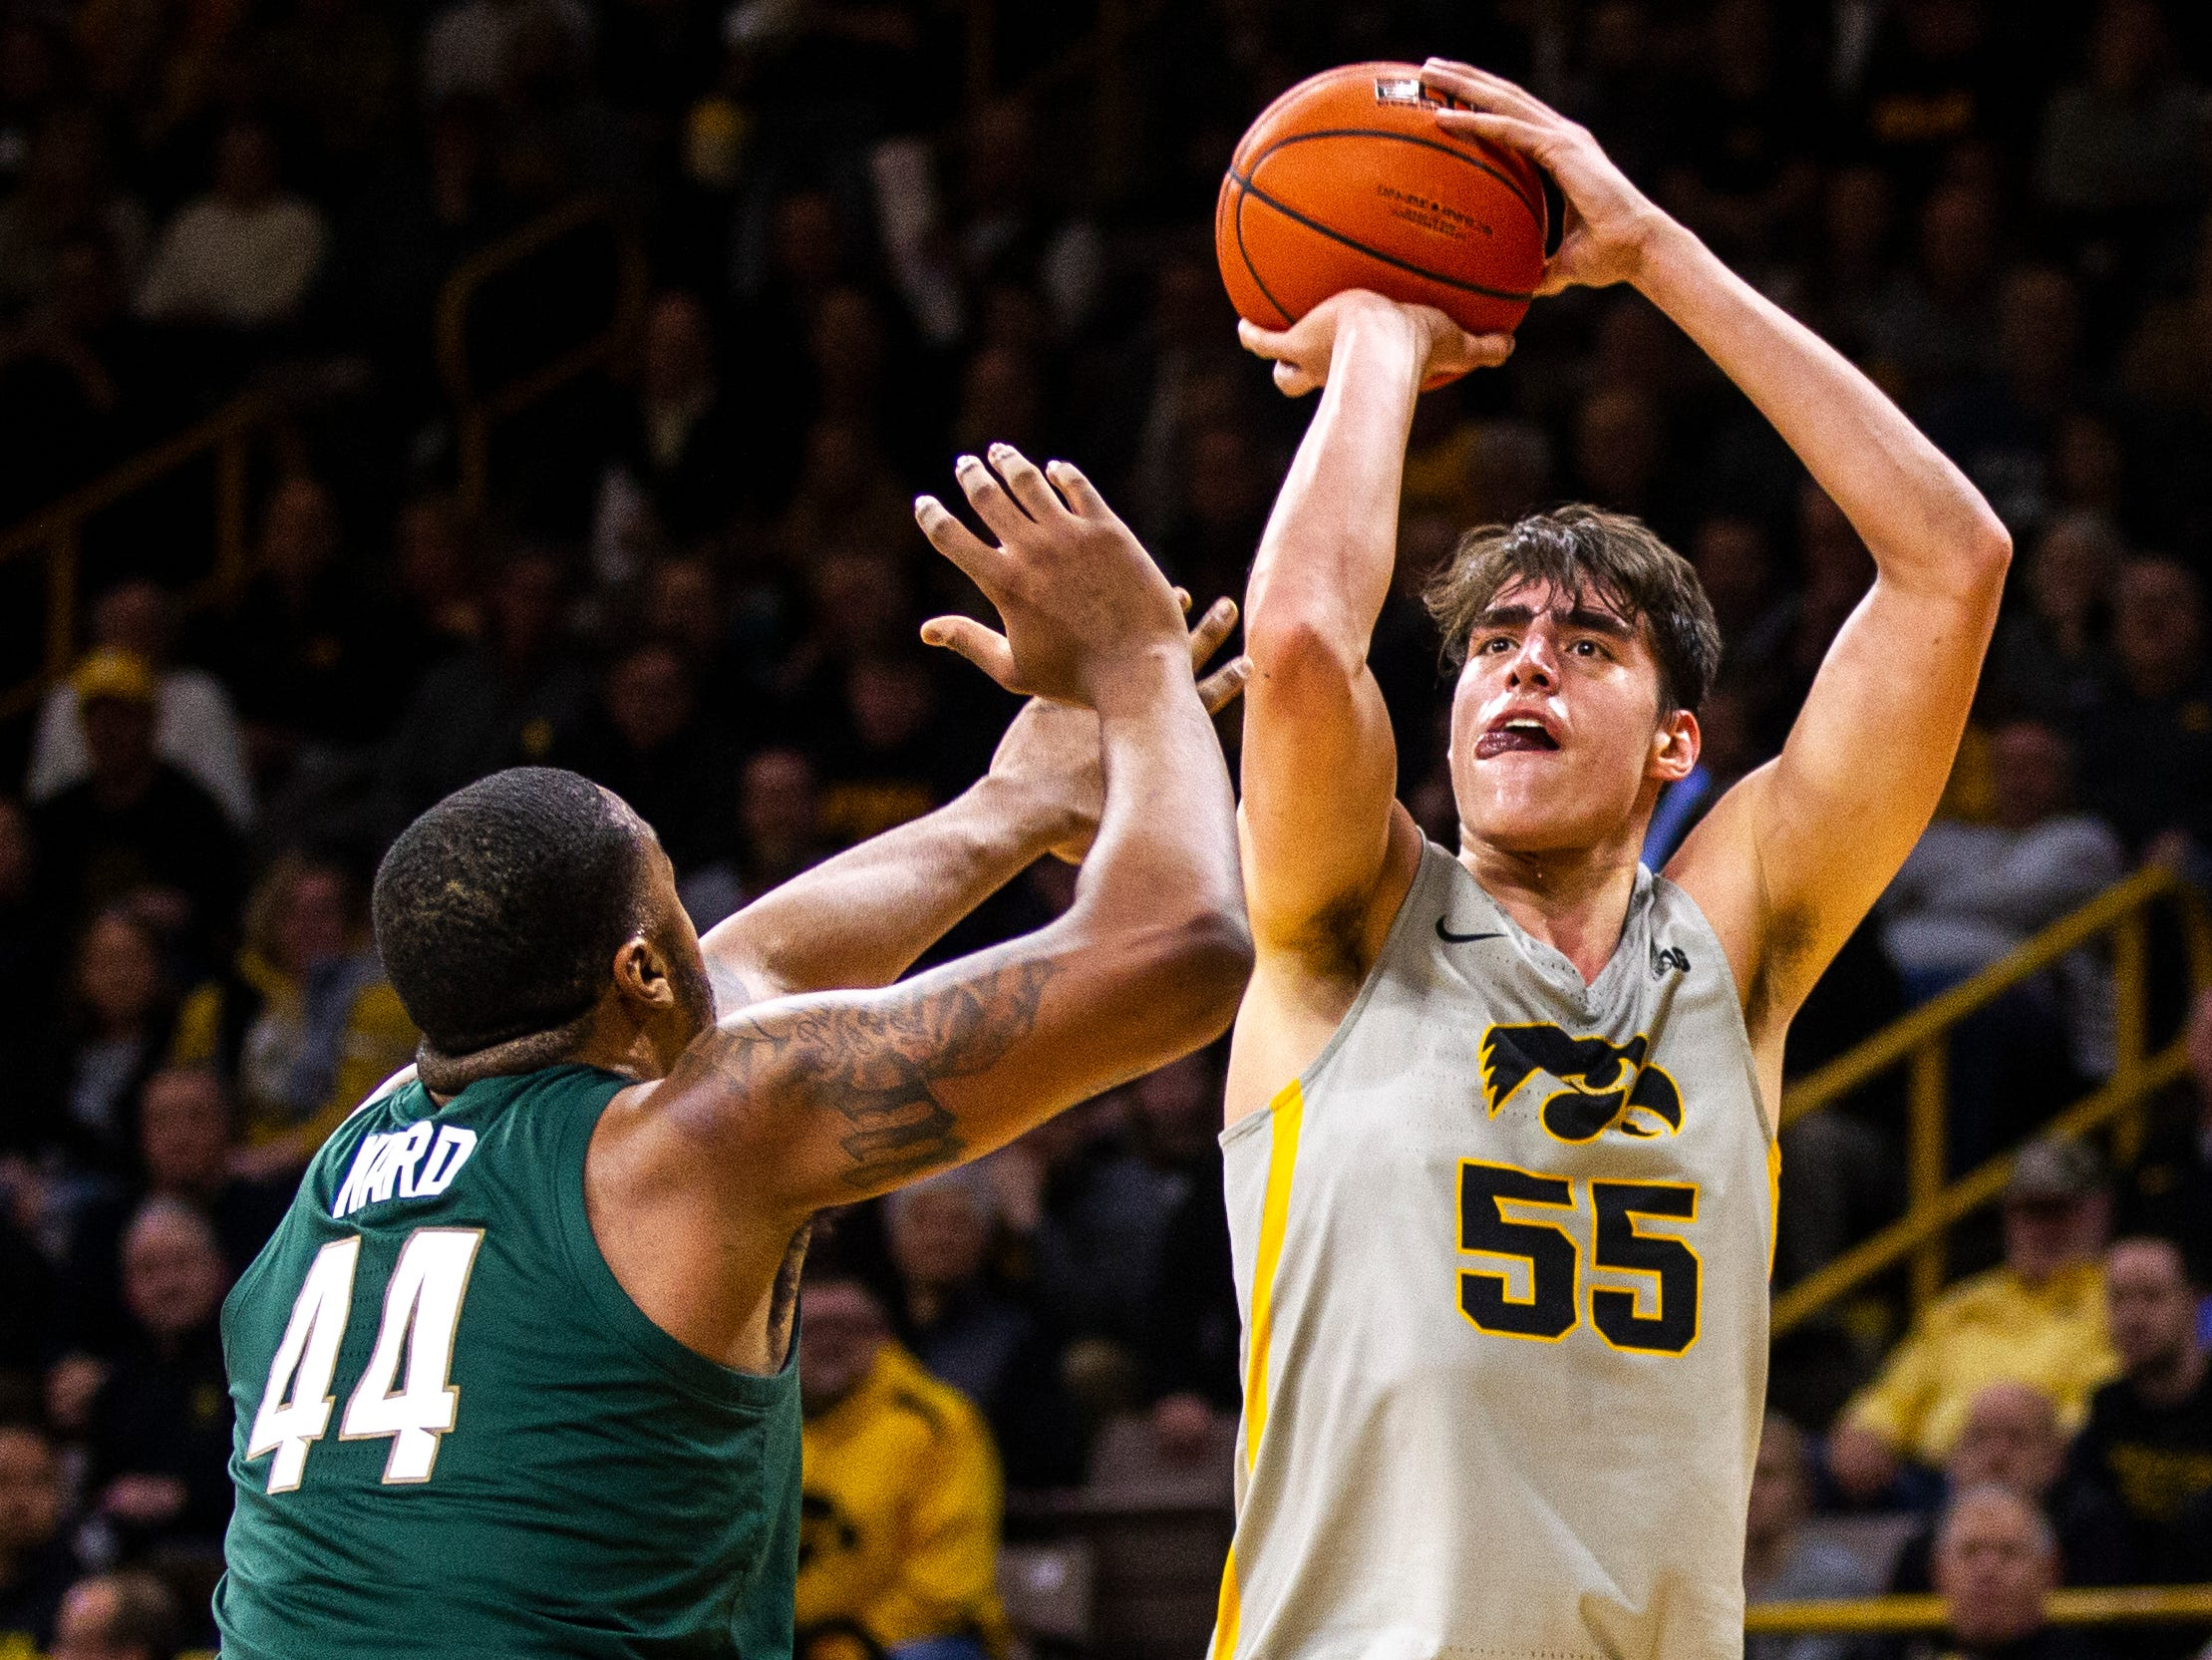 Iowa forward Luka Garza (55) attempts a basket while being defended by Michigan State forward Nick Ward (44) during a NCAA Big Ten Conference men's basketball game on Thursday, Jan. 24, 2019, at Carver-Hawkeye Arena in Iowa City, Iowa.